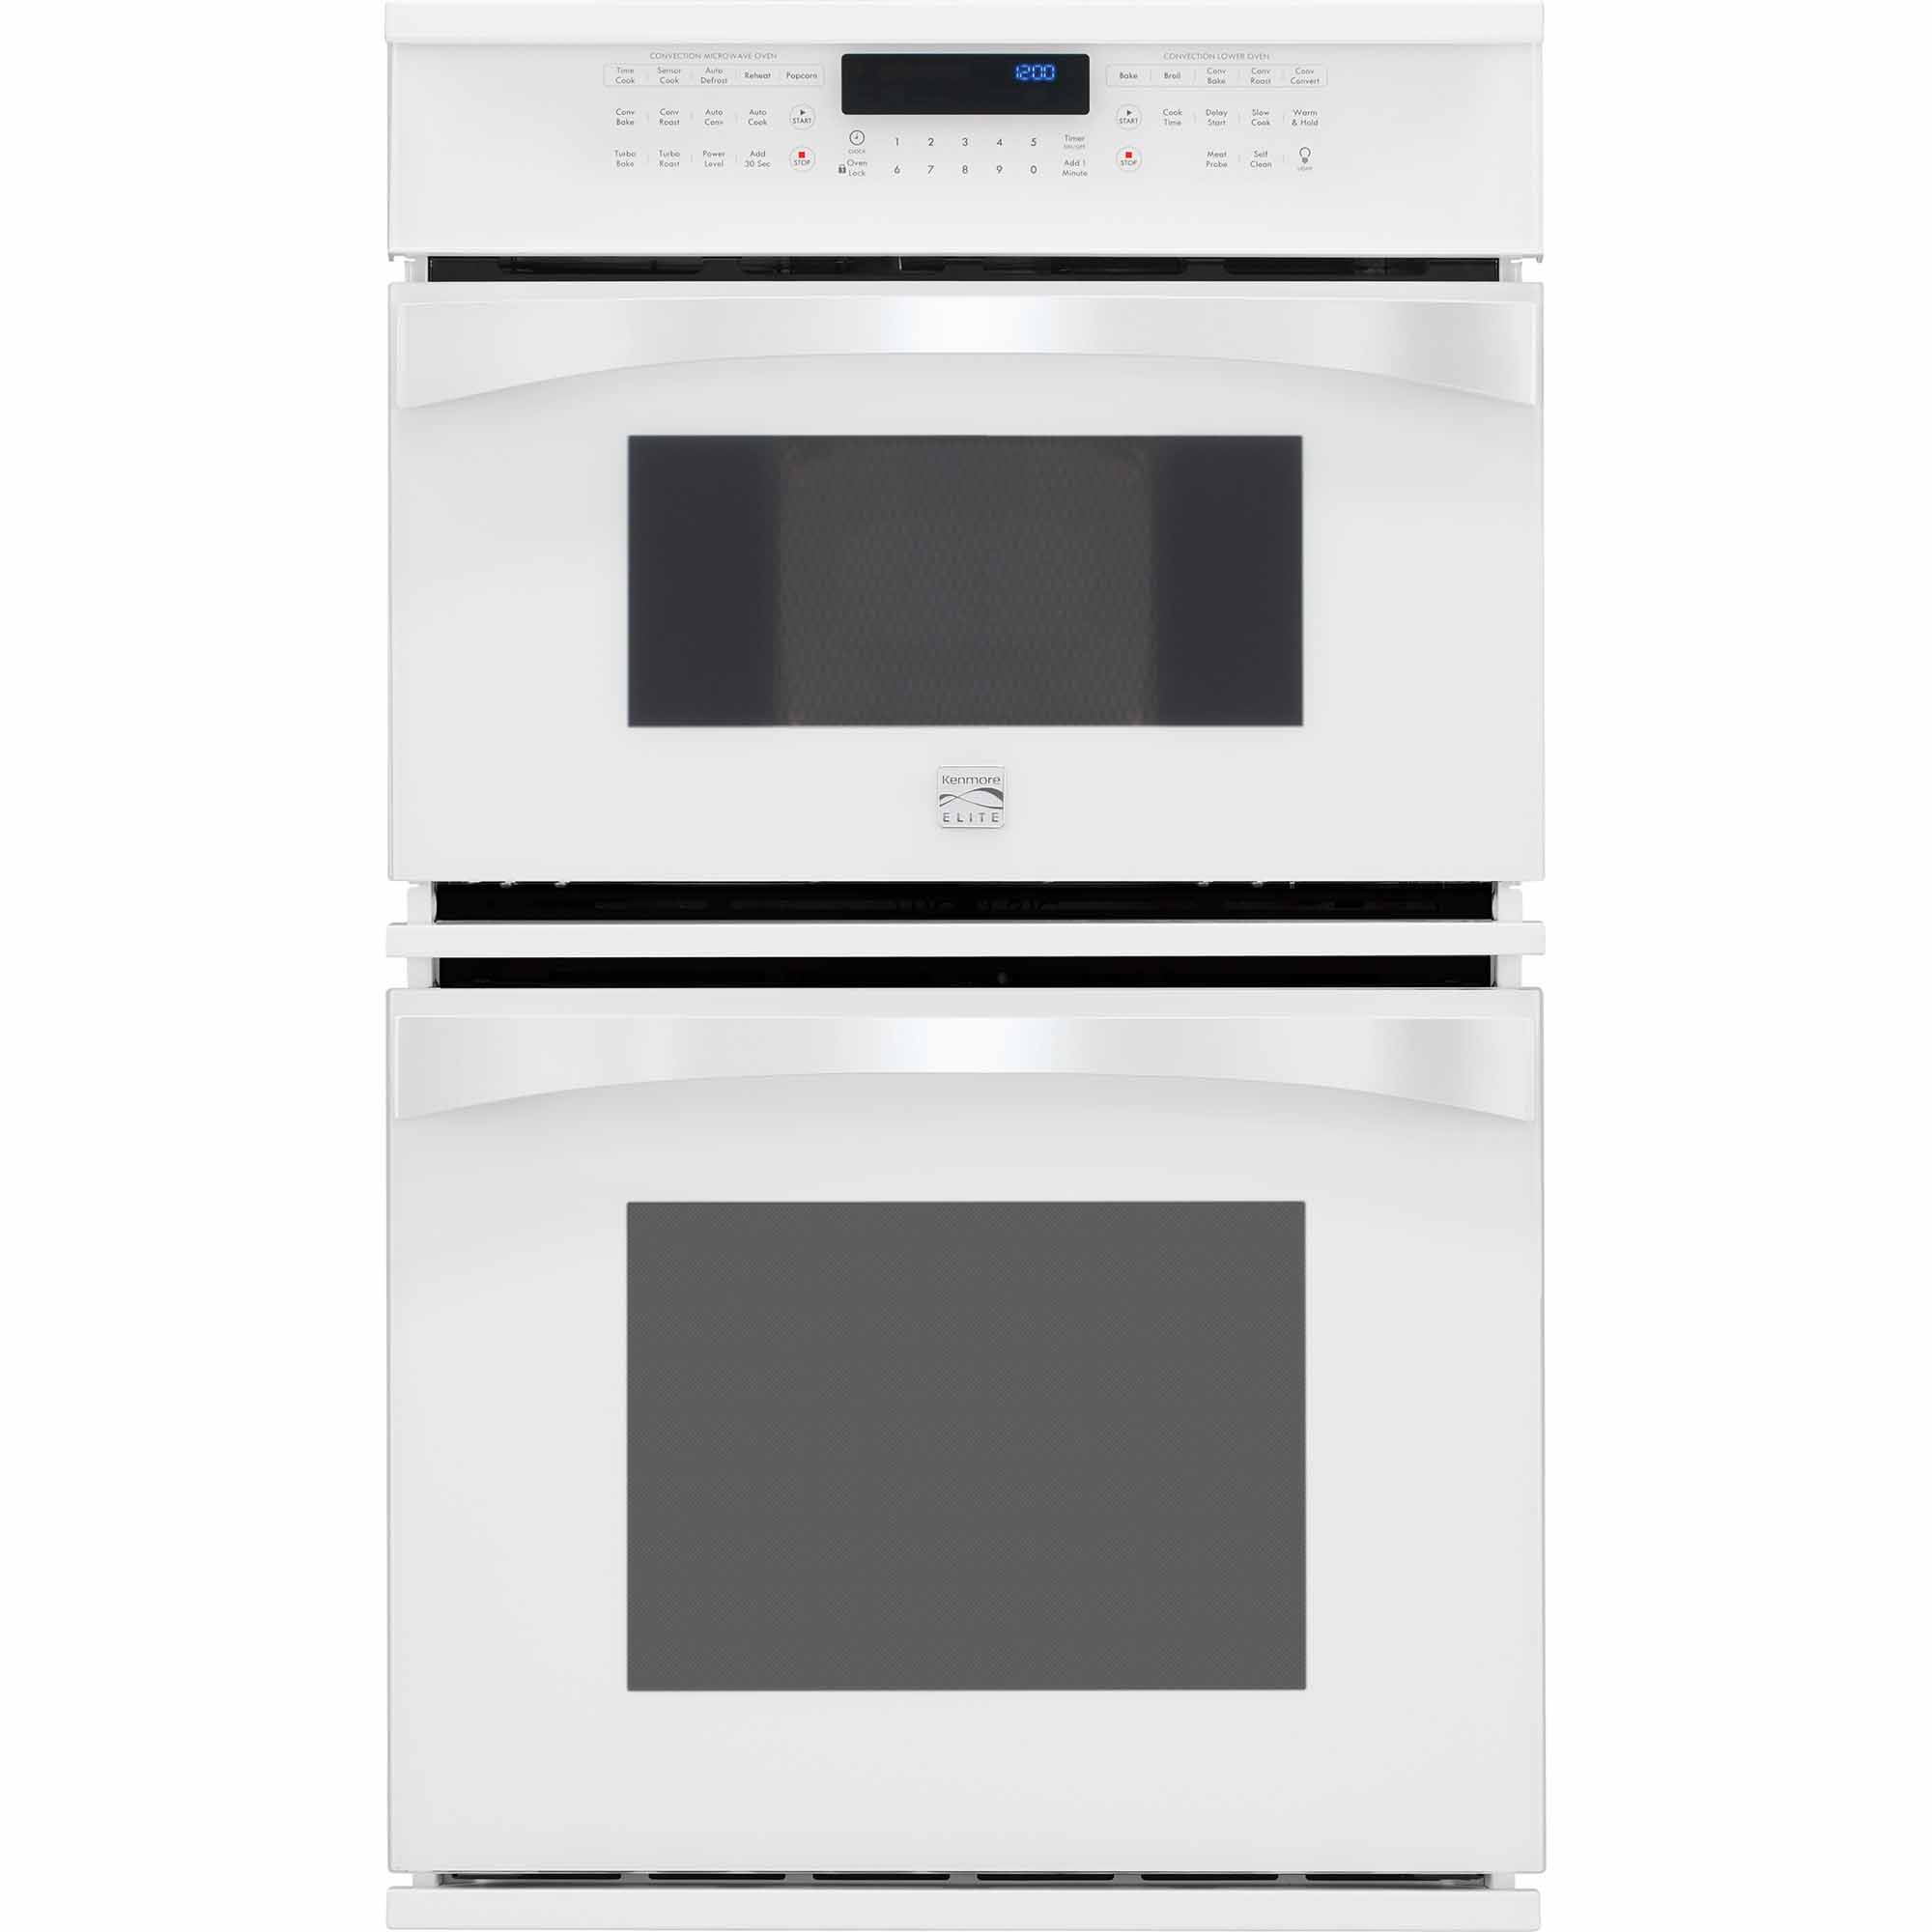 Kenmore Elite 48912 27 Electric Combination Oven - White